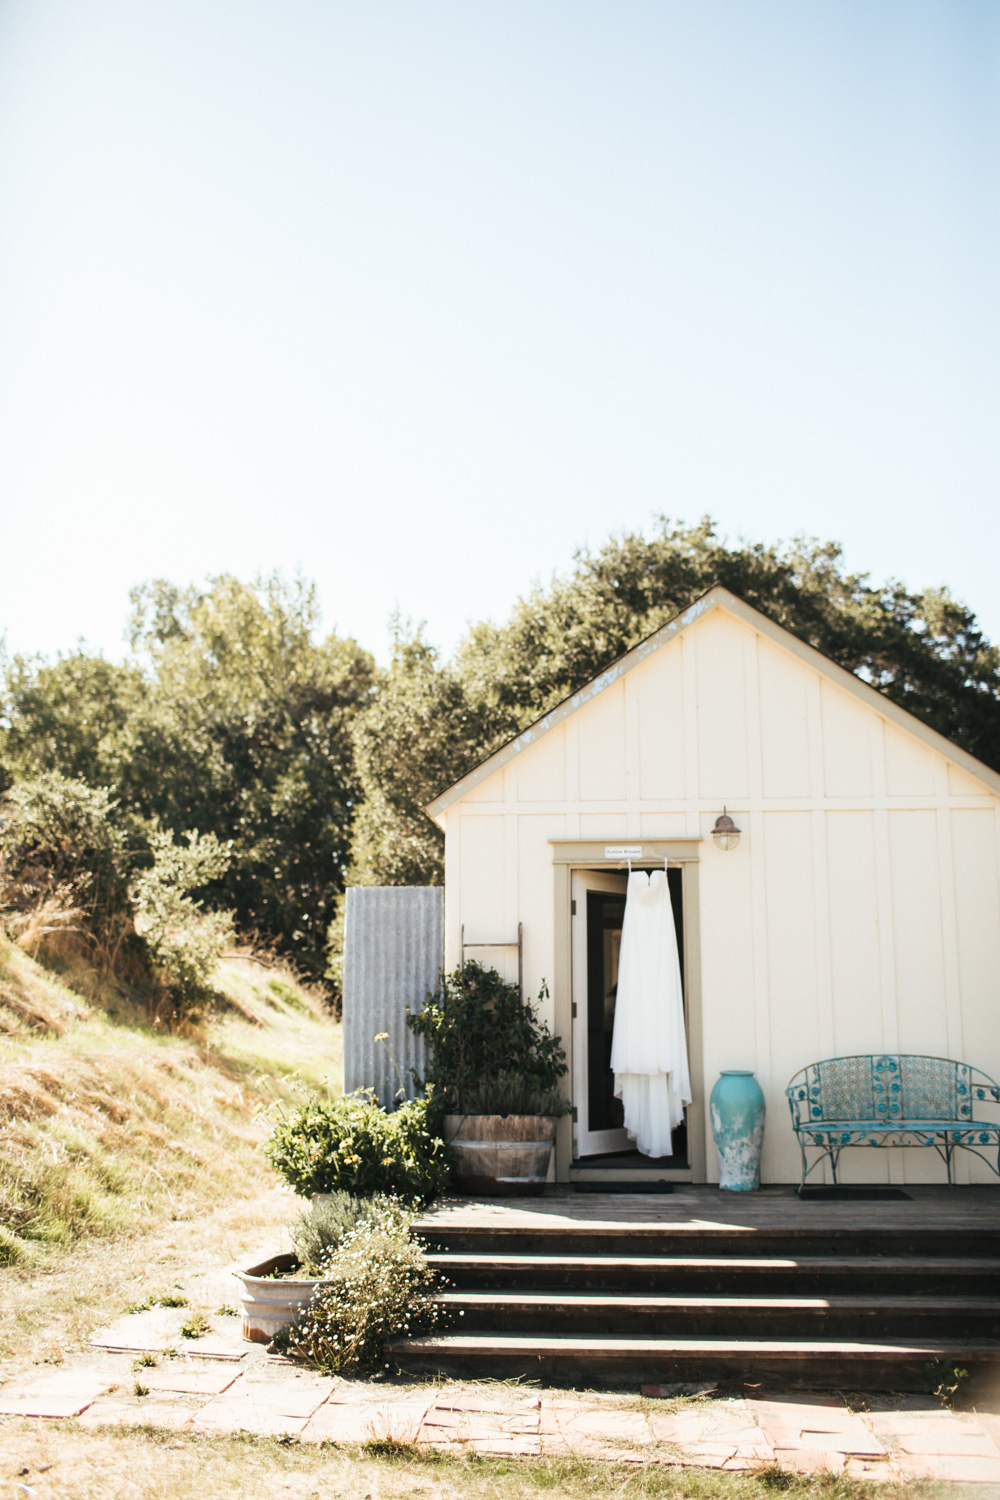 petaluma-sonoma-county-wedding-photographer-1.jpg